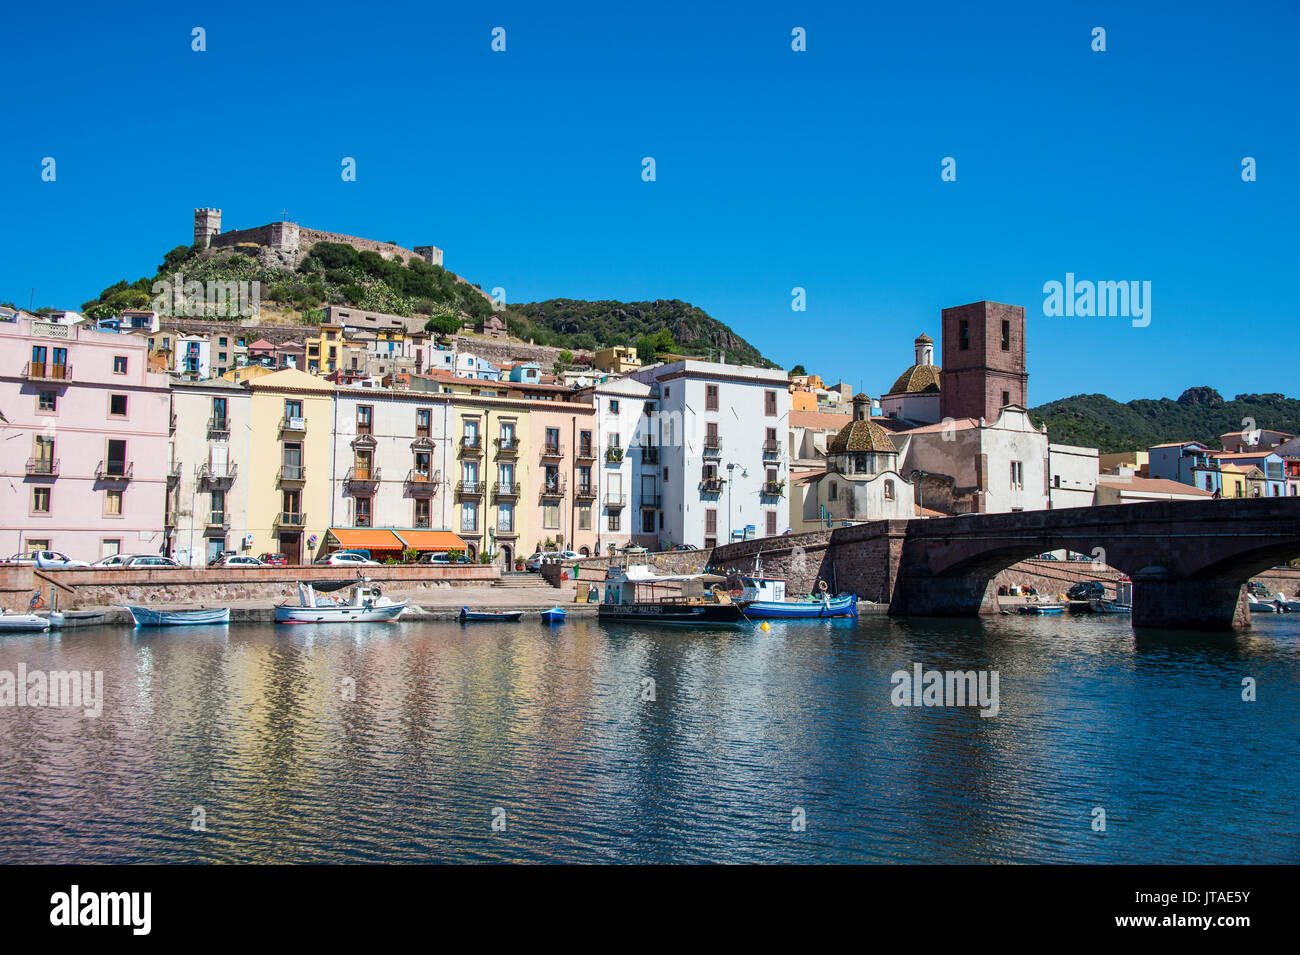 The town of Bosa on the River Temo, Sardinia, Italy, Europe - Stock Image